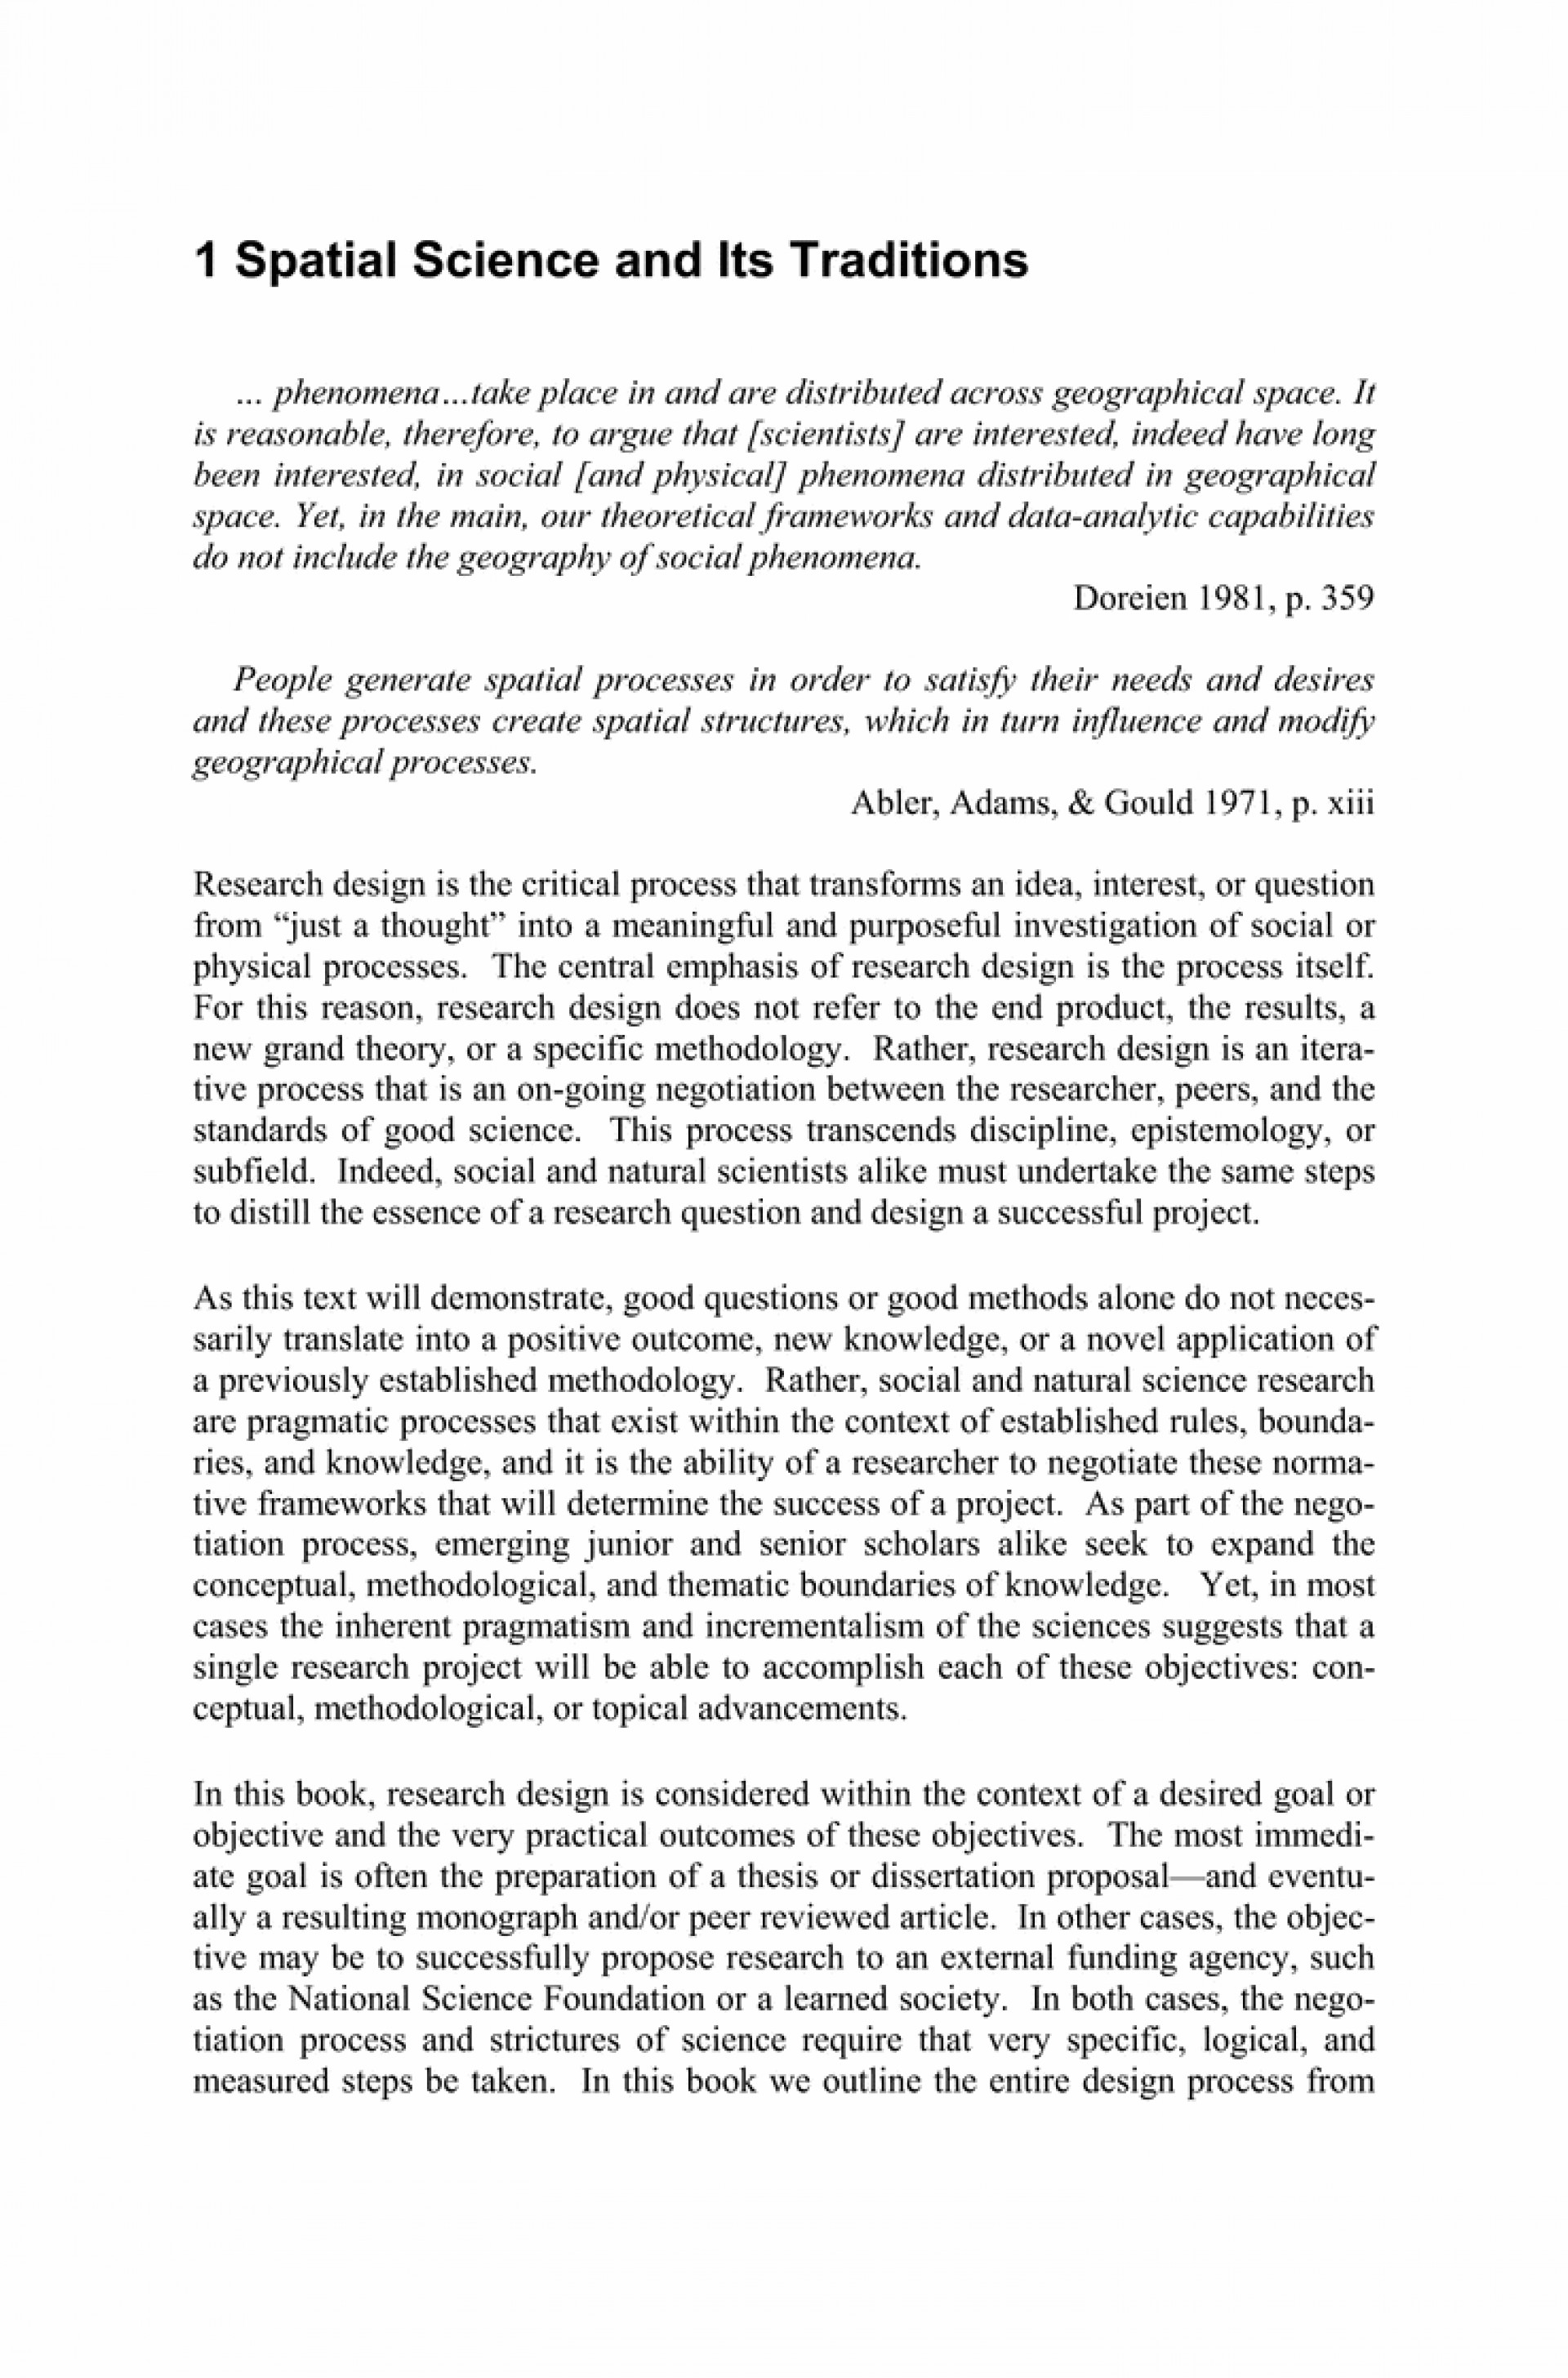 004 Research Paper How To Write Scientific Sensational Pdf And Publish A Computer Science 1920